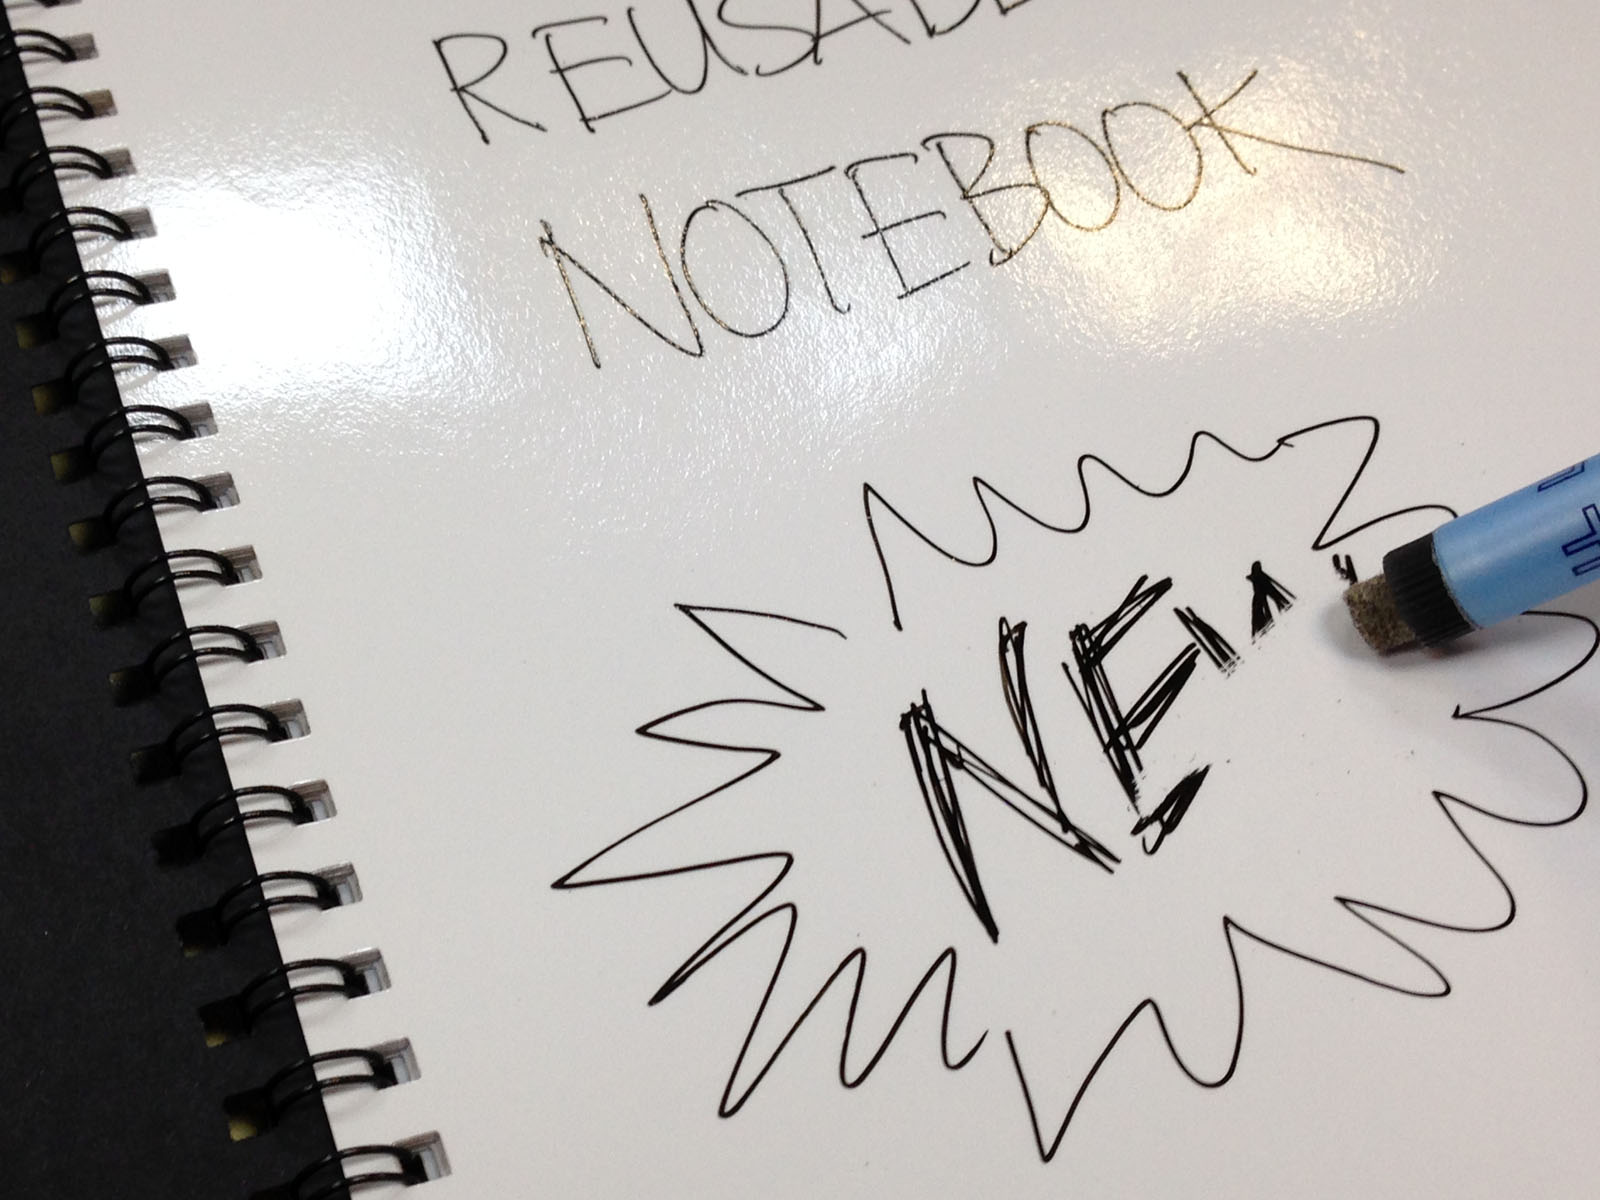 Magic Notebook ™ - the original and best reusable whiteboard notebook